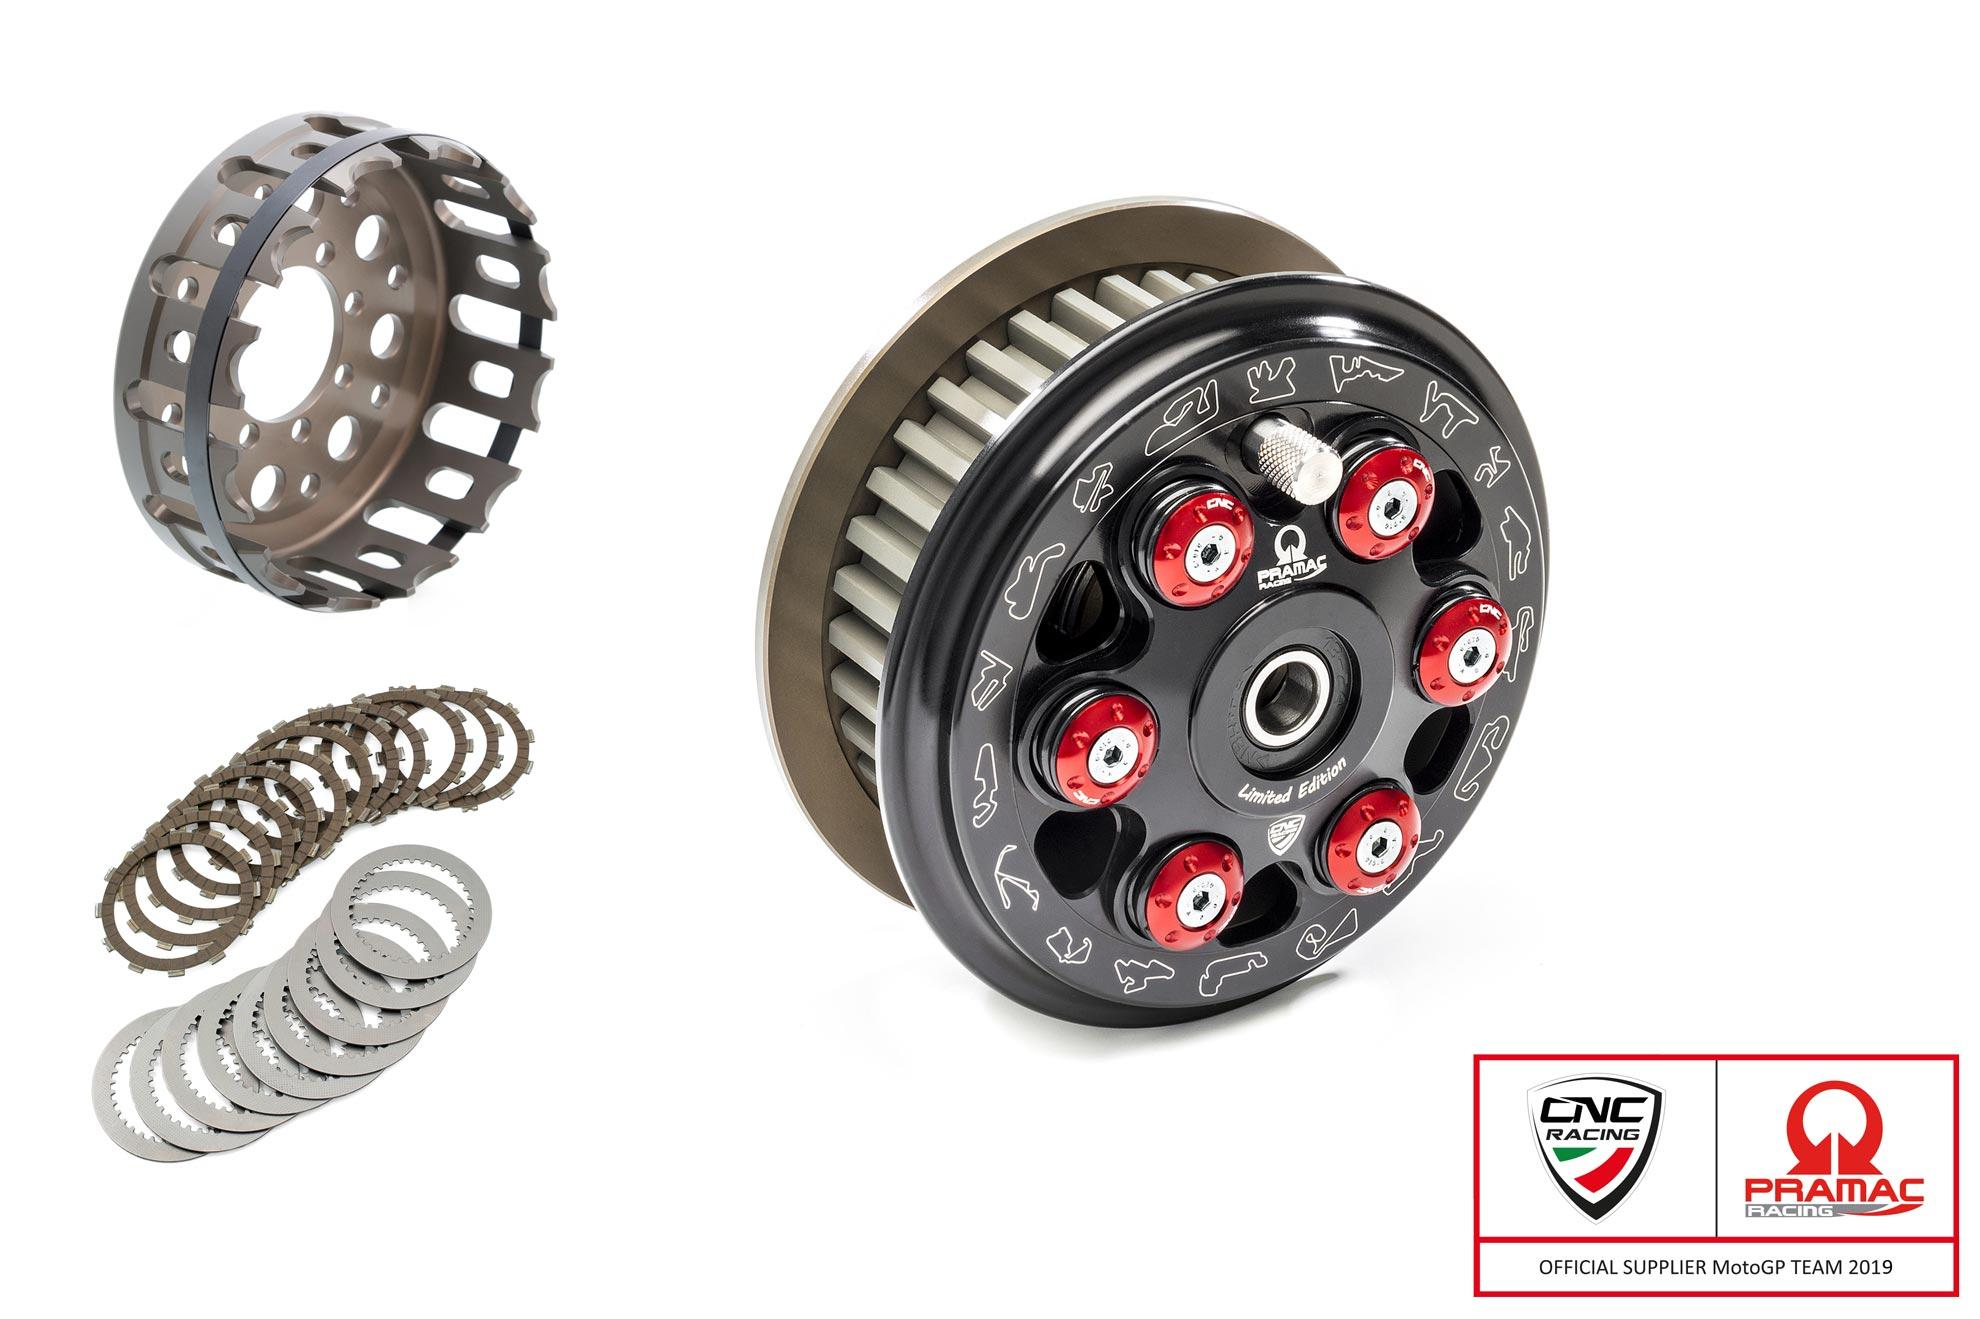 Ducati - Slipper Clutch Kit, Slipper Clutch, CNC Racing - Averys Motorcycles